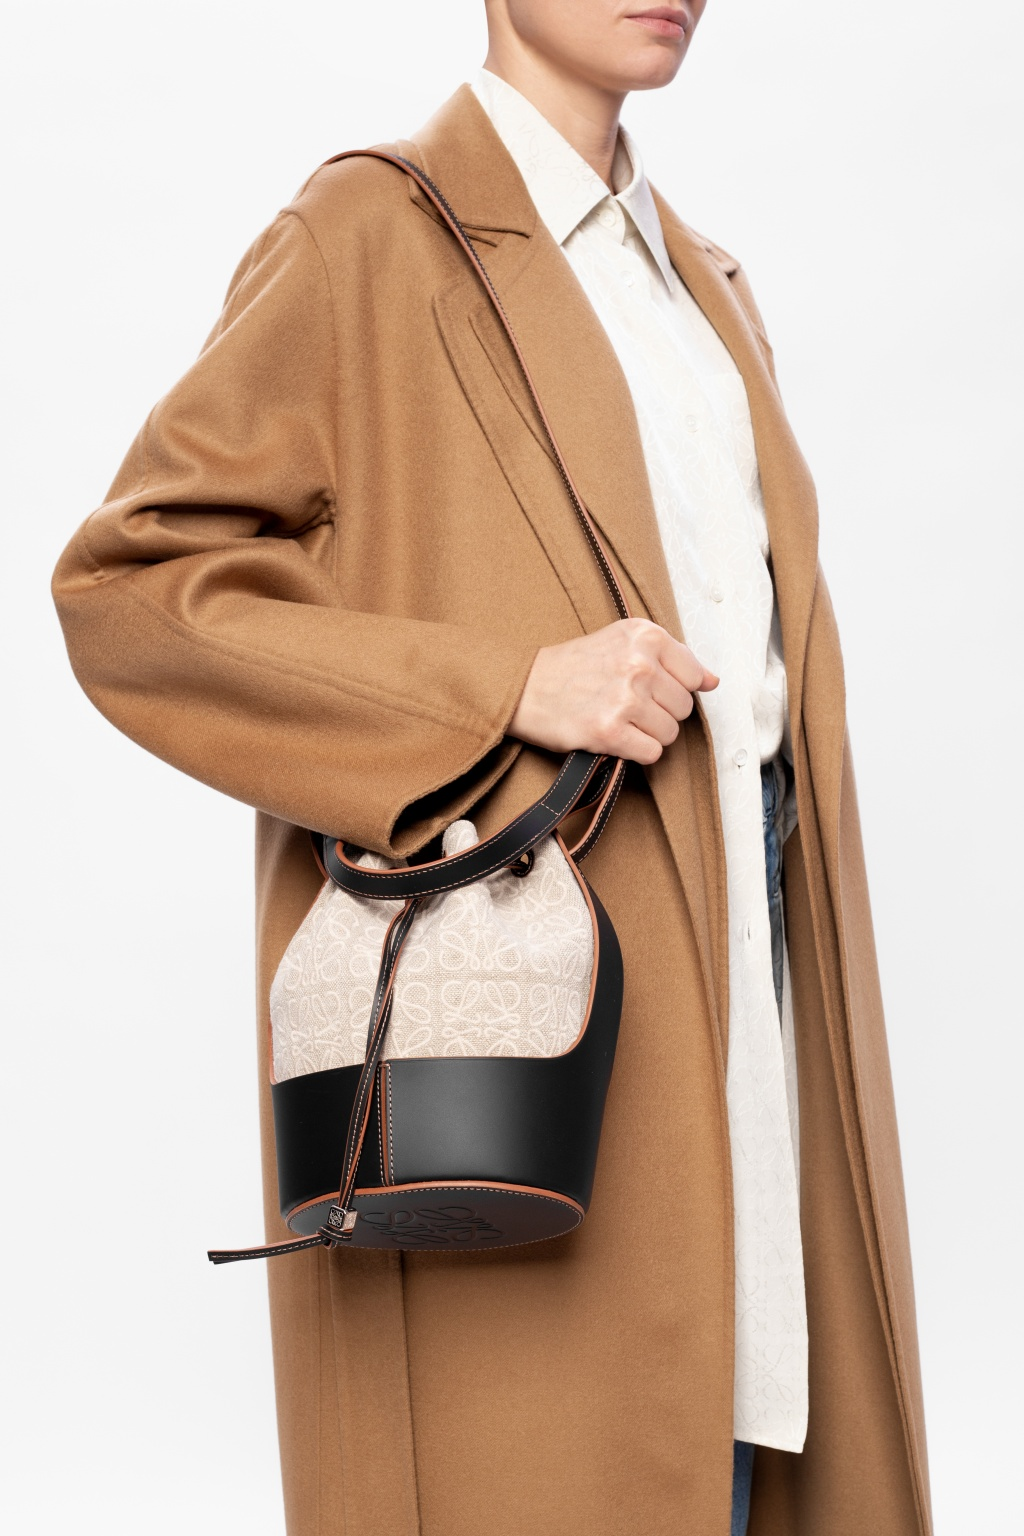 Loewe 'Balloon' shoulder bag